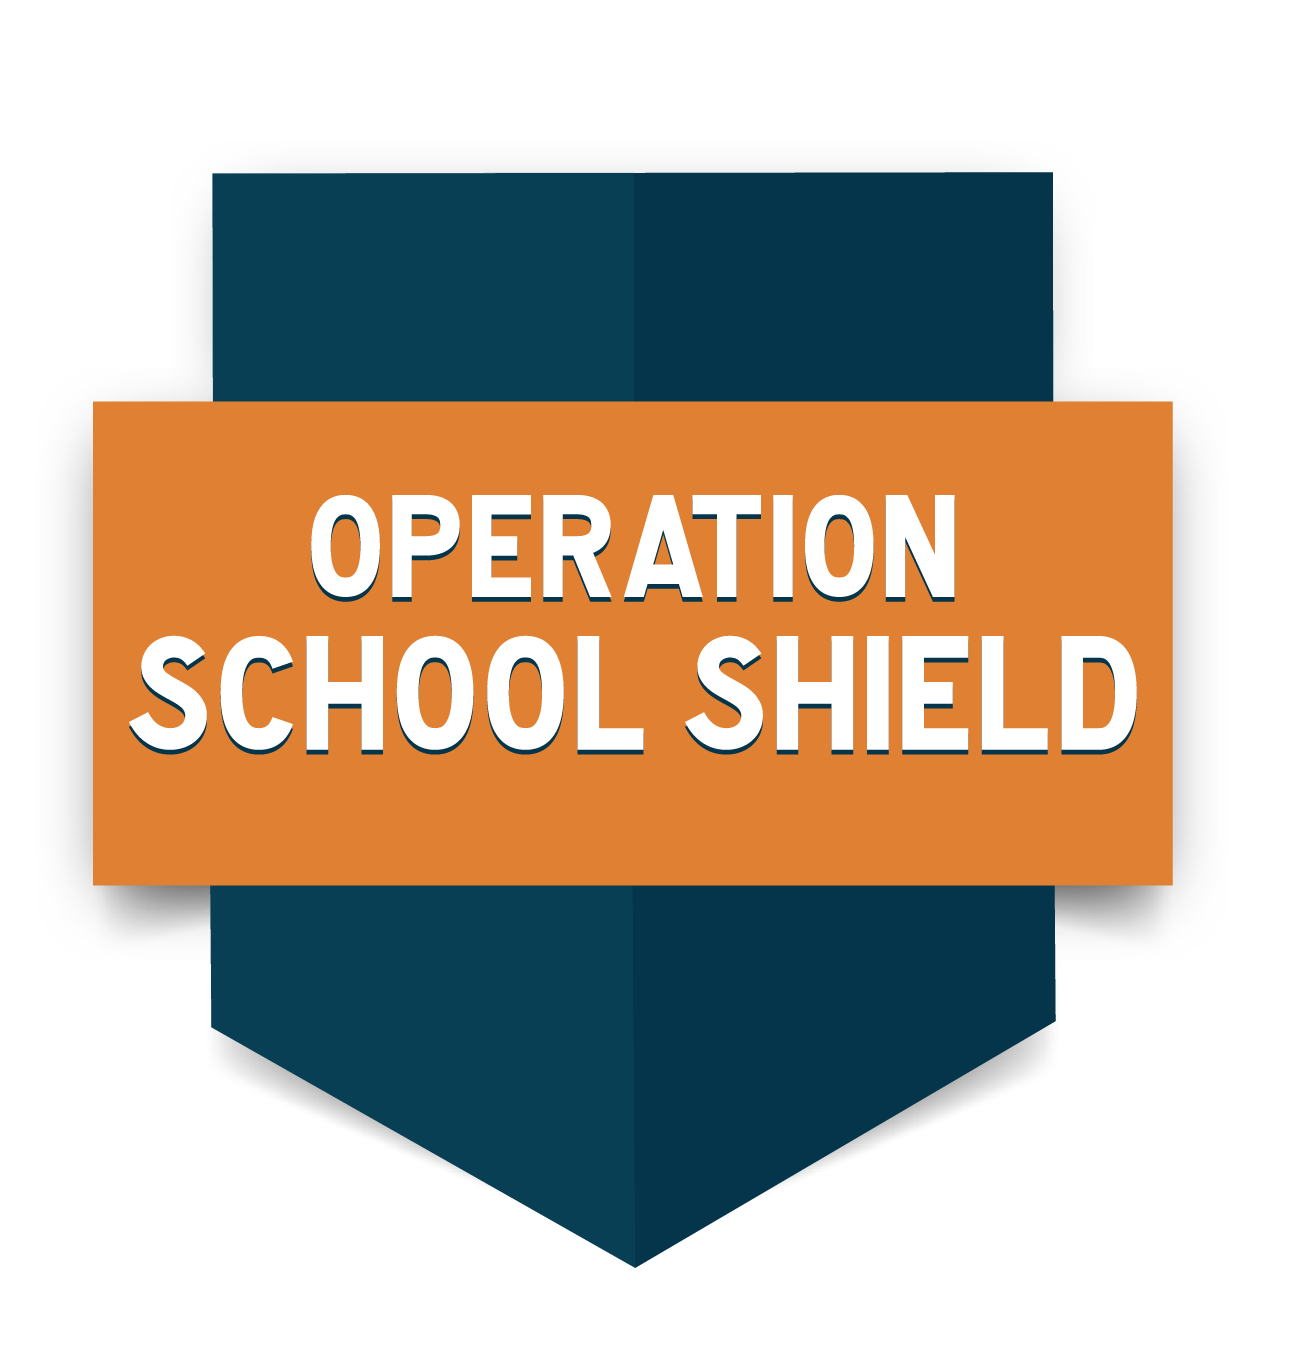 OPERATION SCHOOL SHIELD